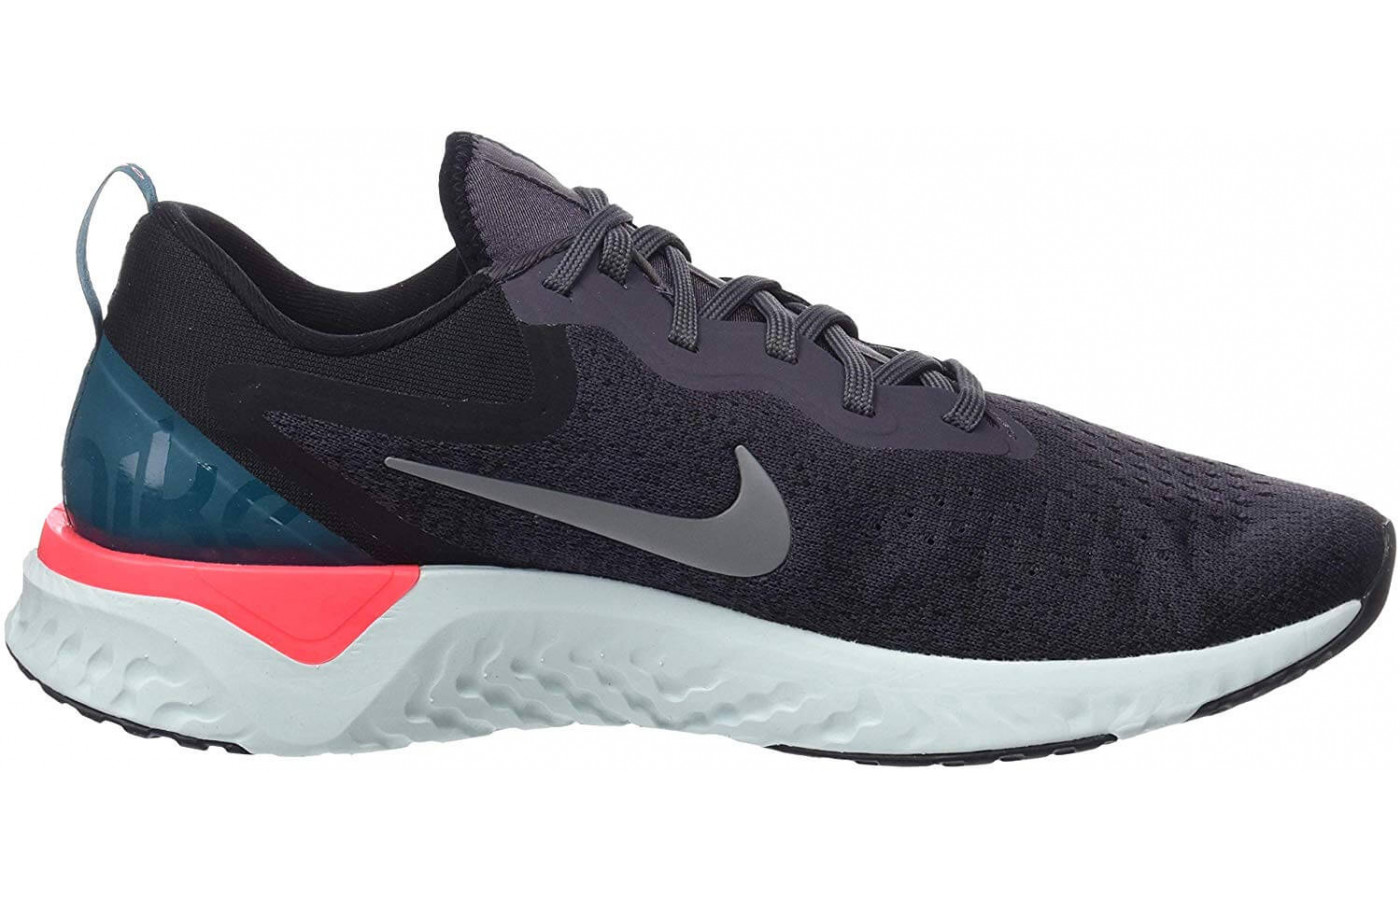 The Odyssey React features a high level of energy return